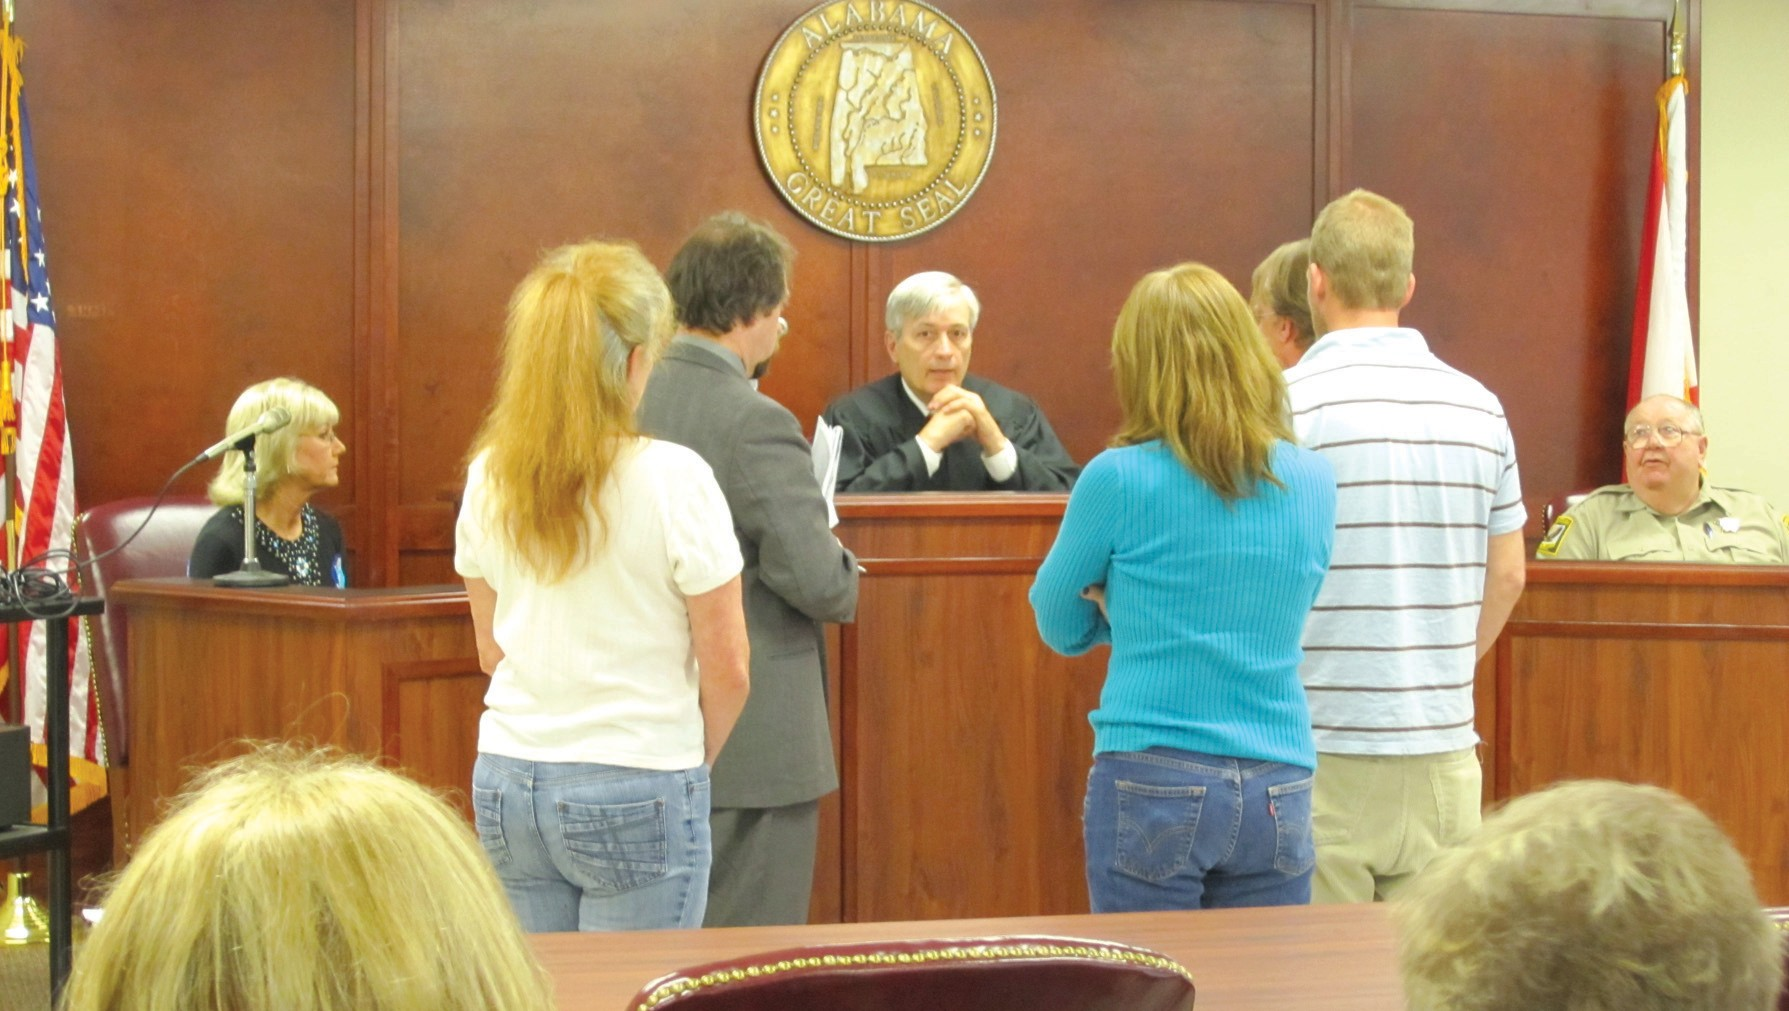 Drug court clients appear weekly before drug court Judge John Dobson to report on the week's results and progress. Sometimes the subject is more serious, like this hearing, attended by family members, on referral to a longterm treatment facility.